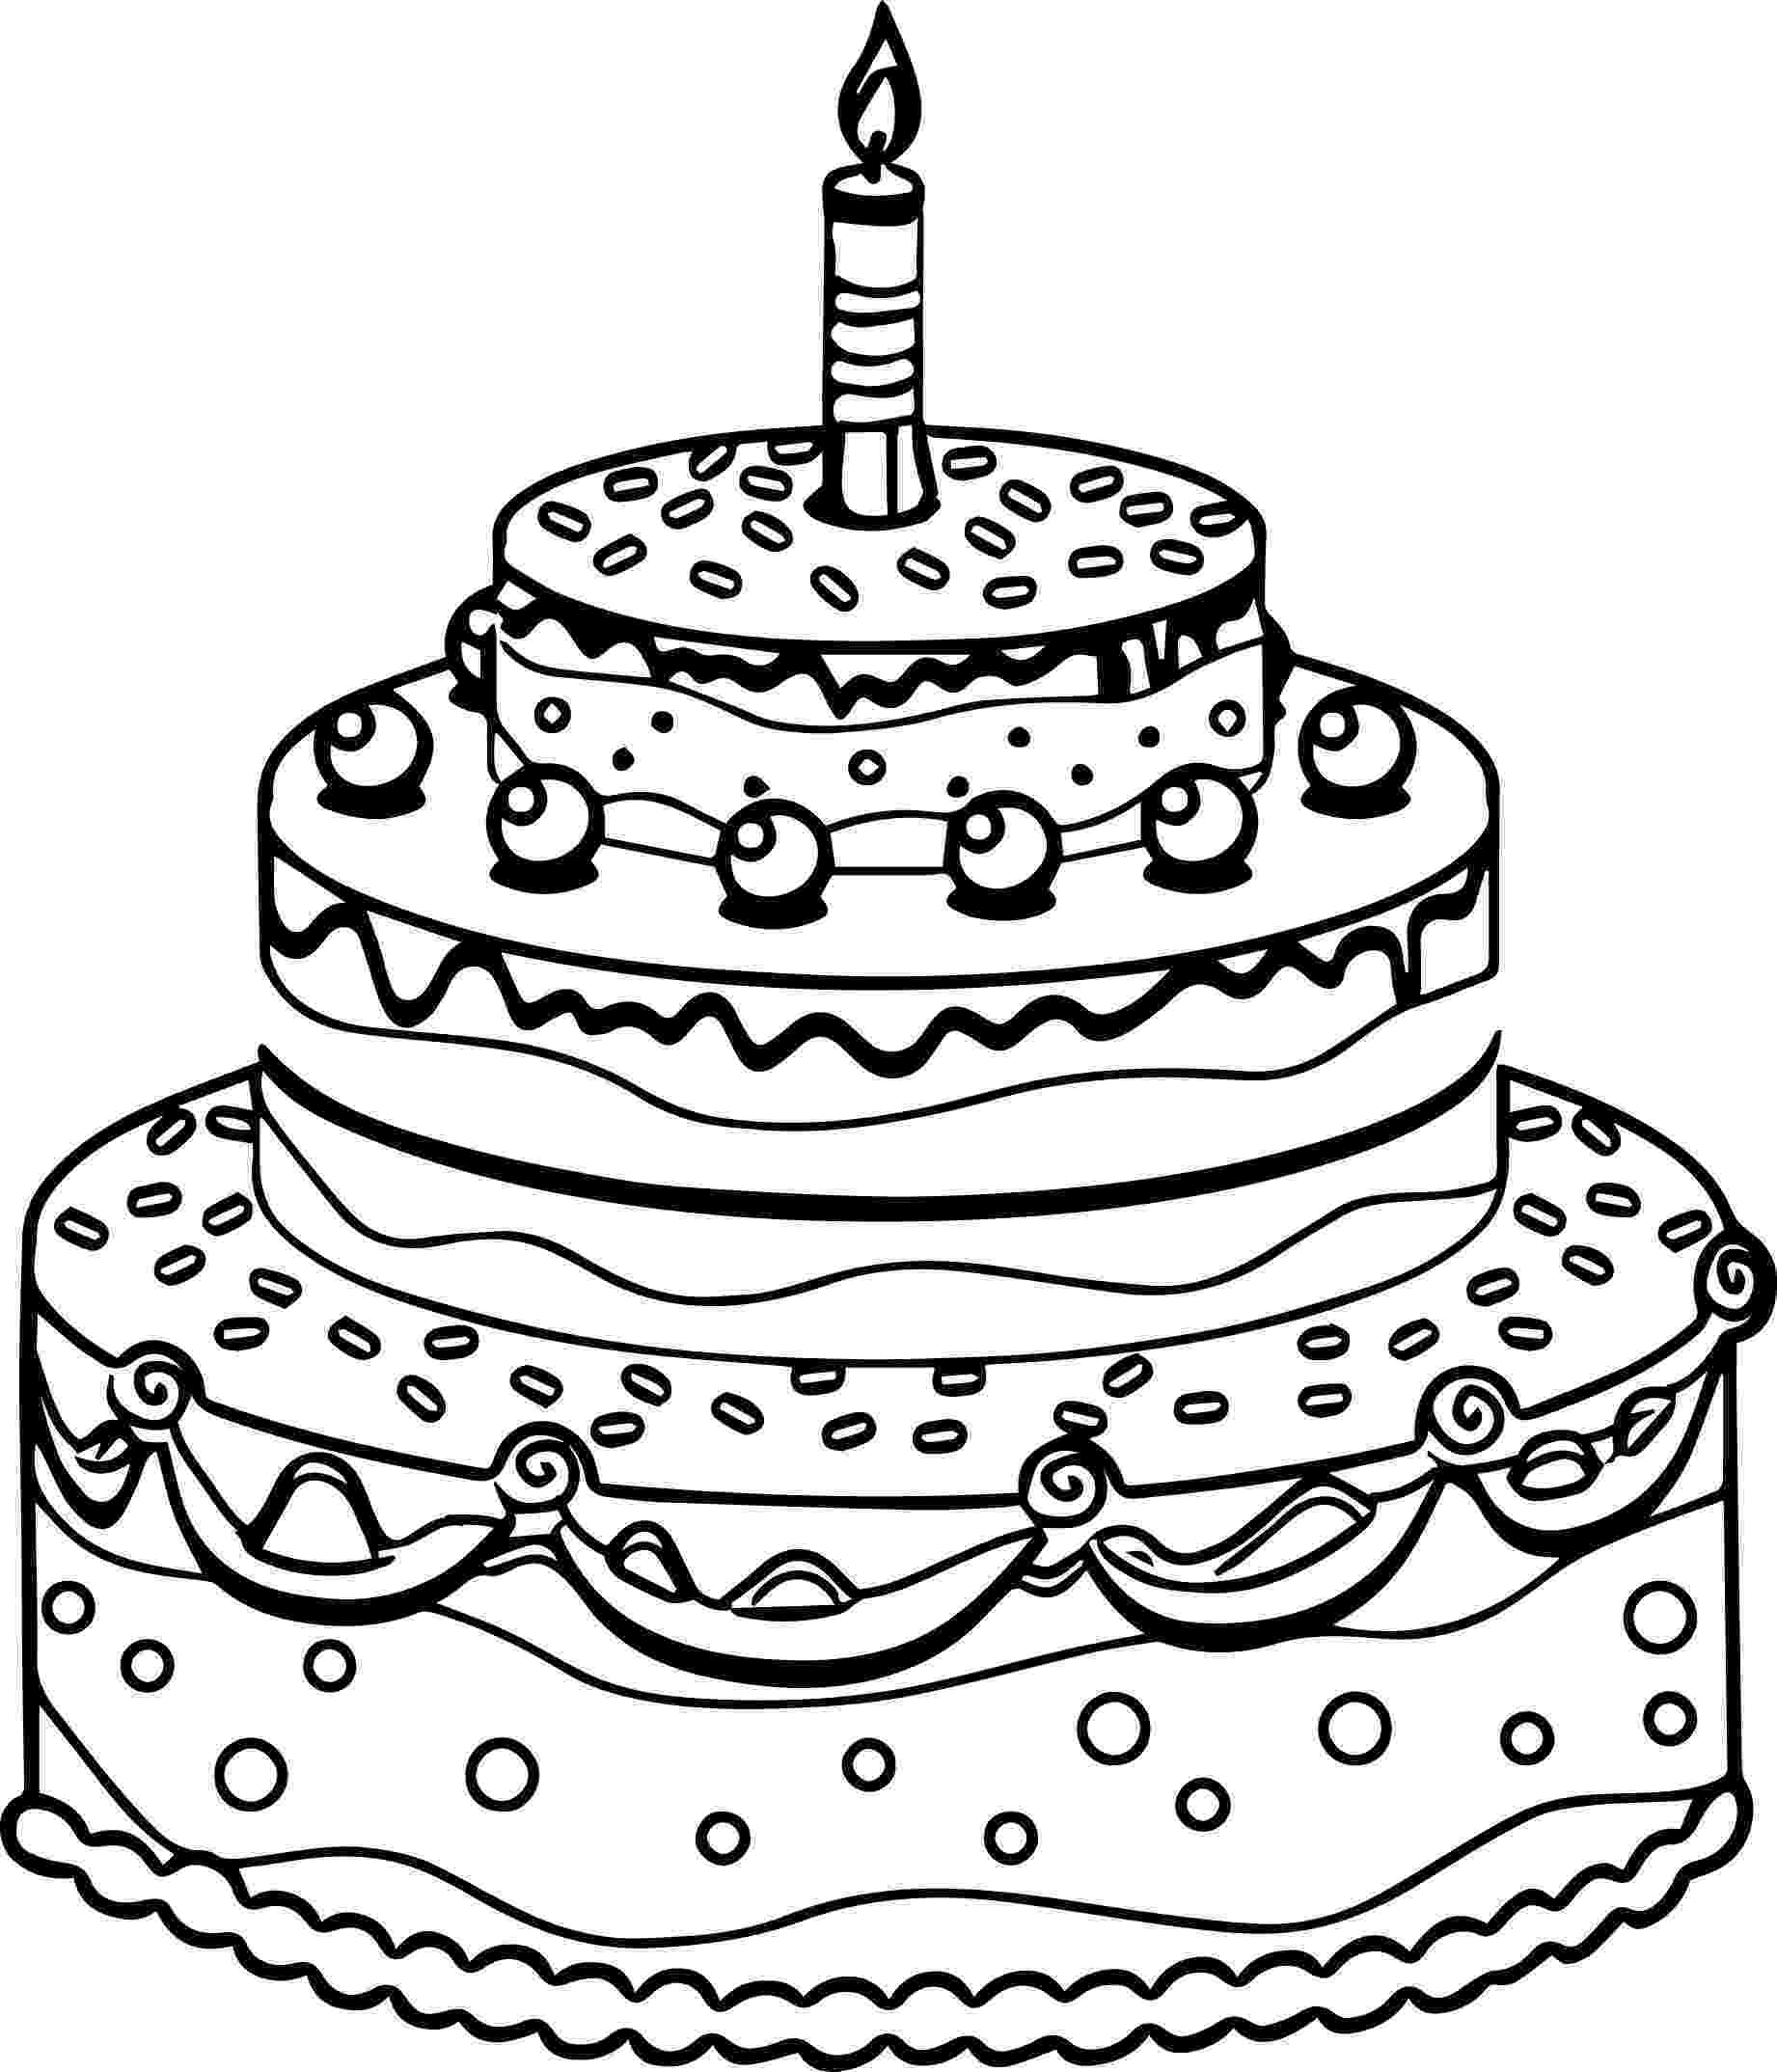 printable birthday cake images birthday cake coloring pages getcoloringpagescom printable cake birthday images